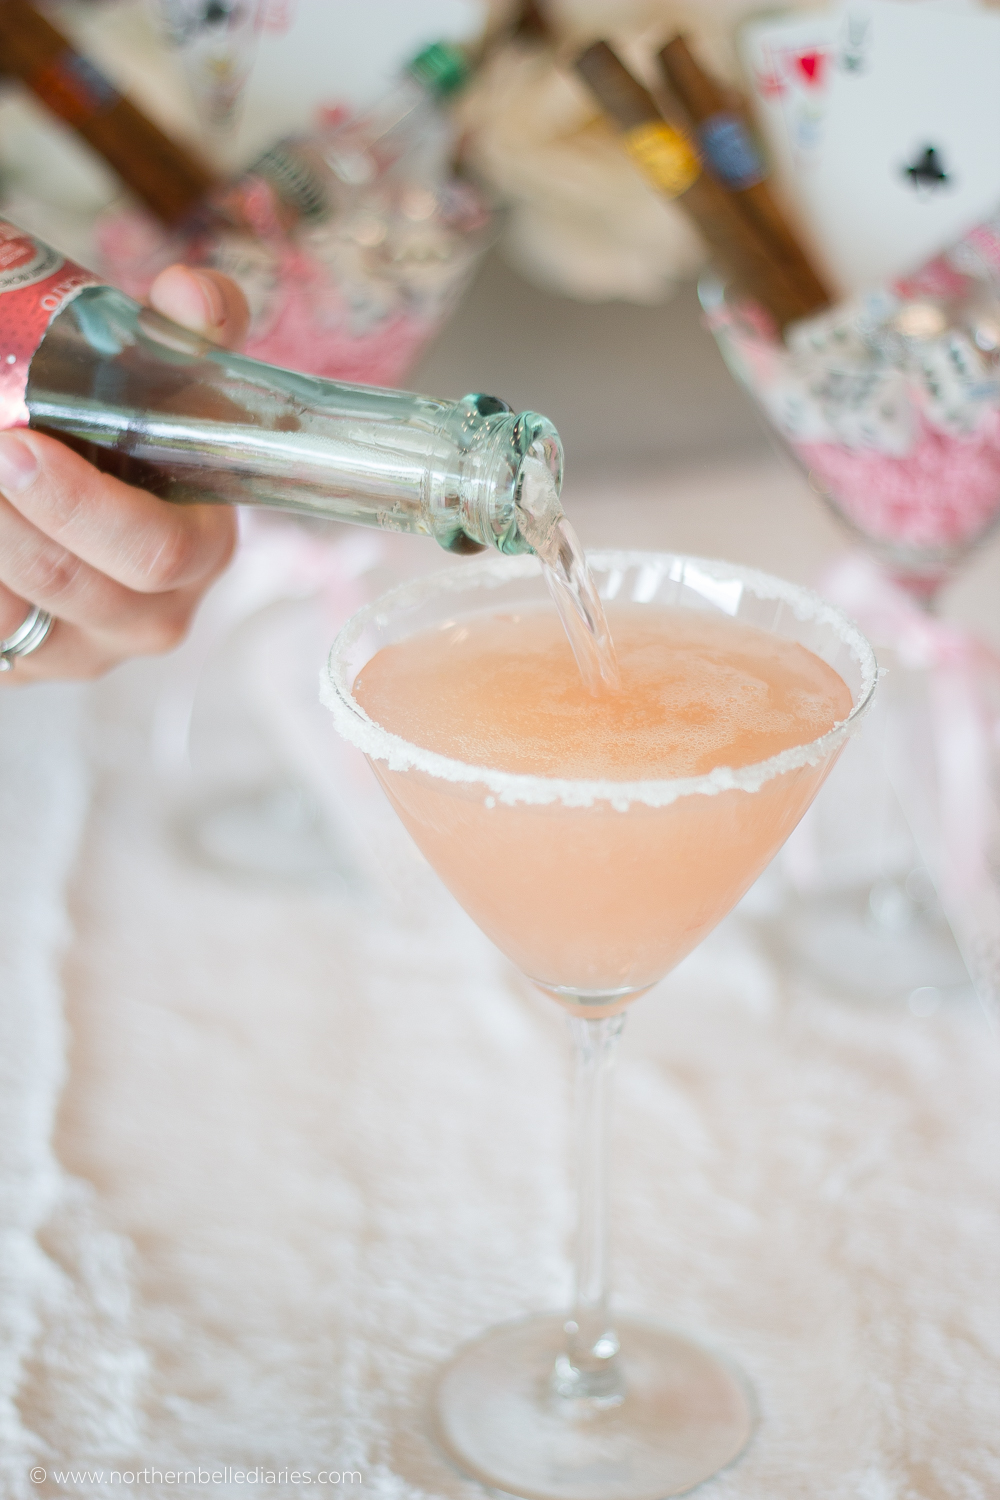 Ladies' Night gift idea + cocktail #recipe #cocktail